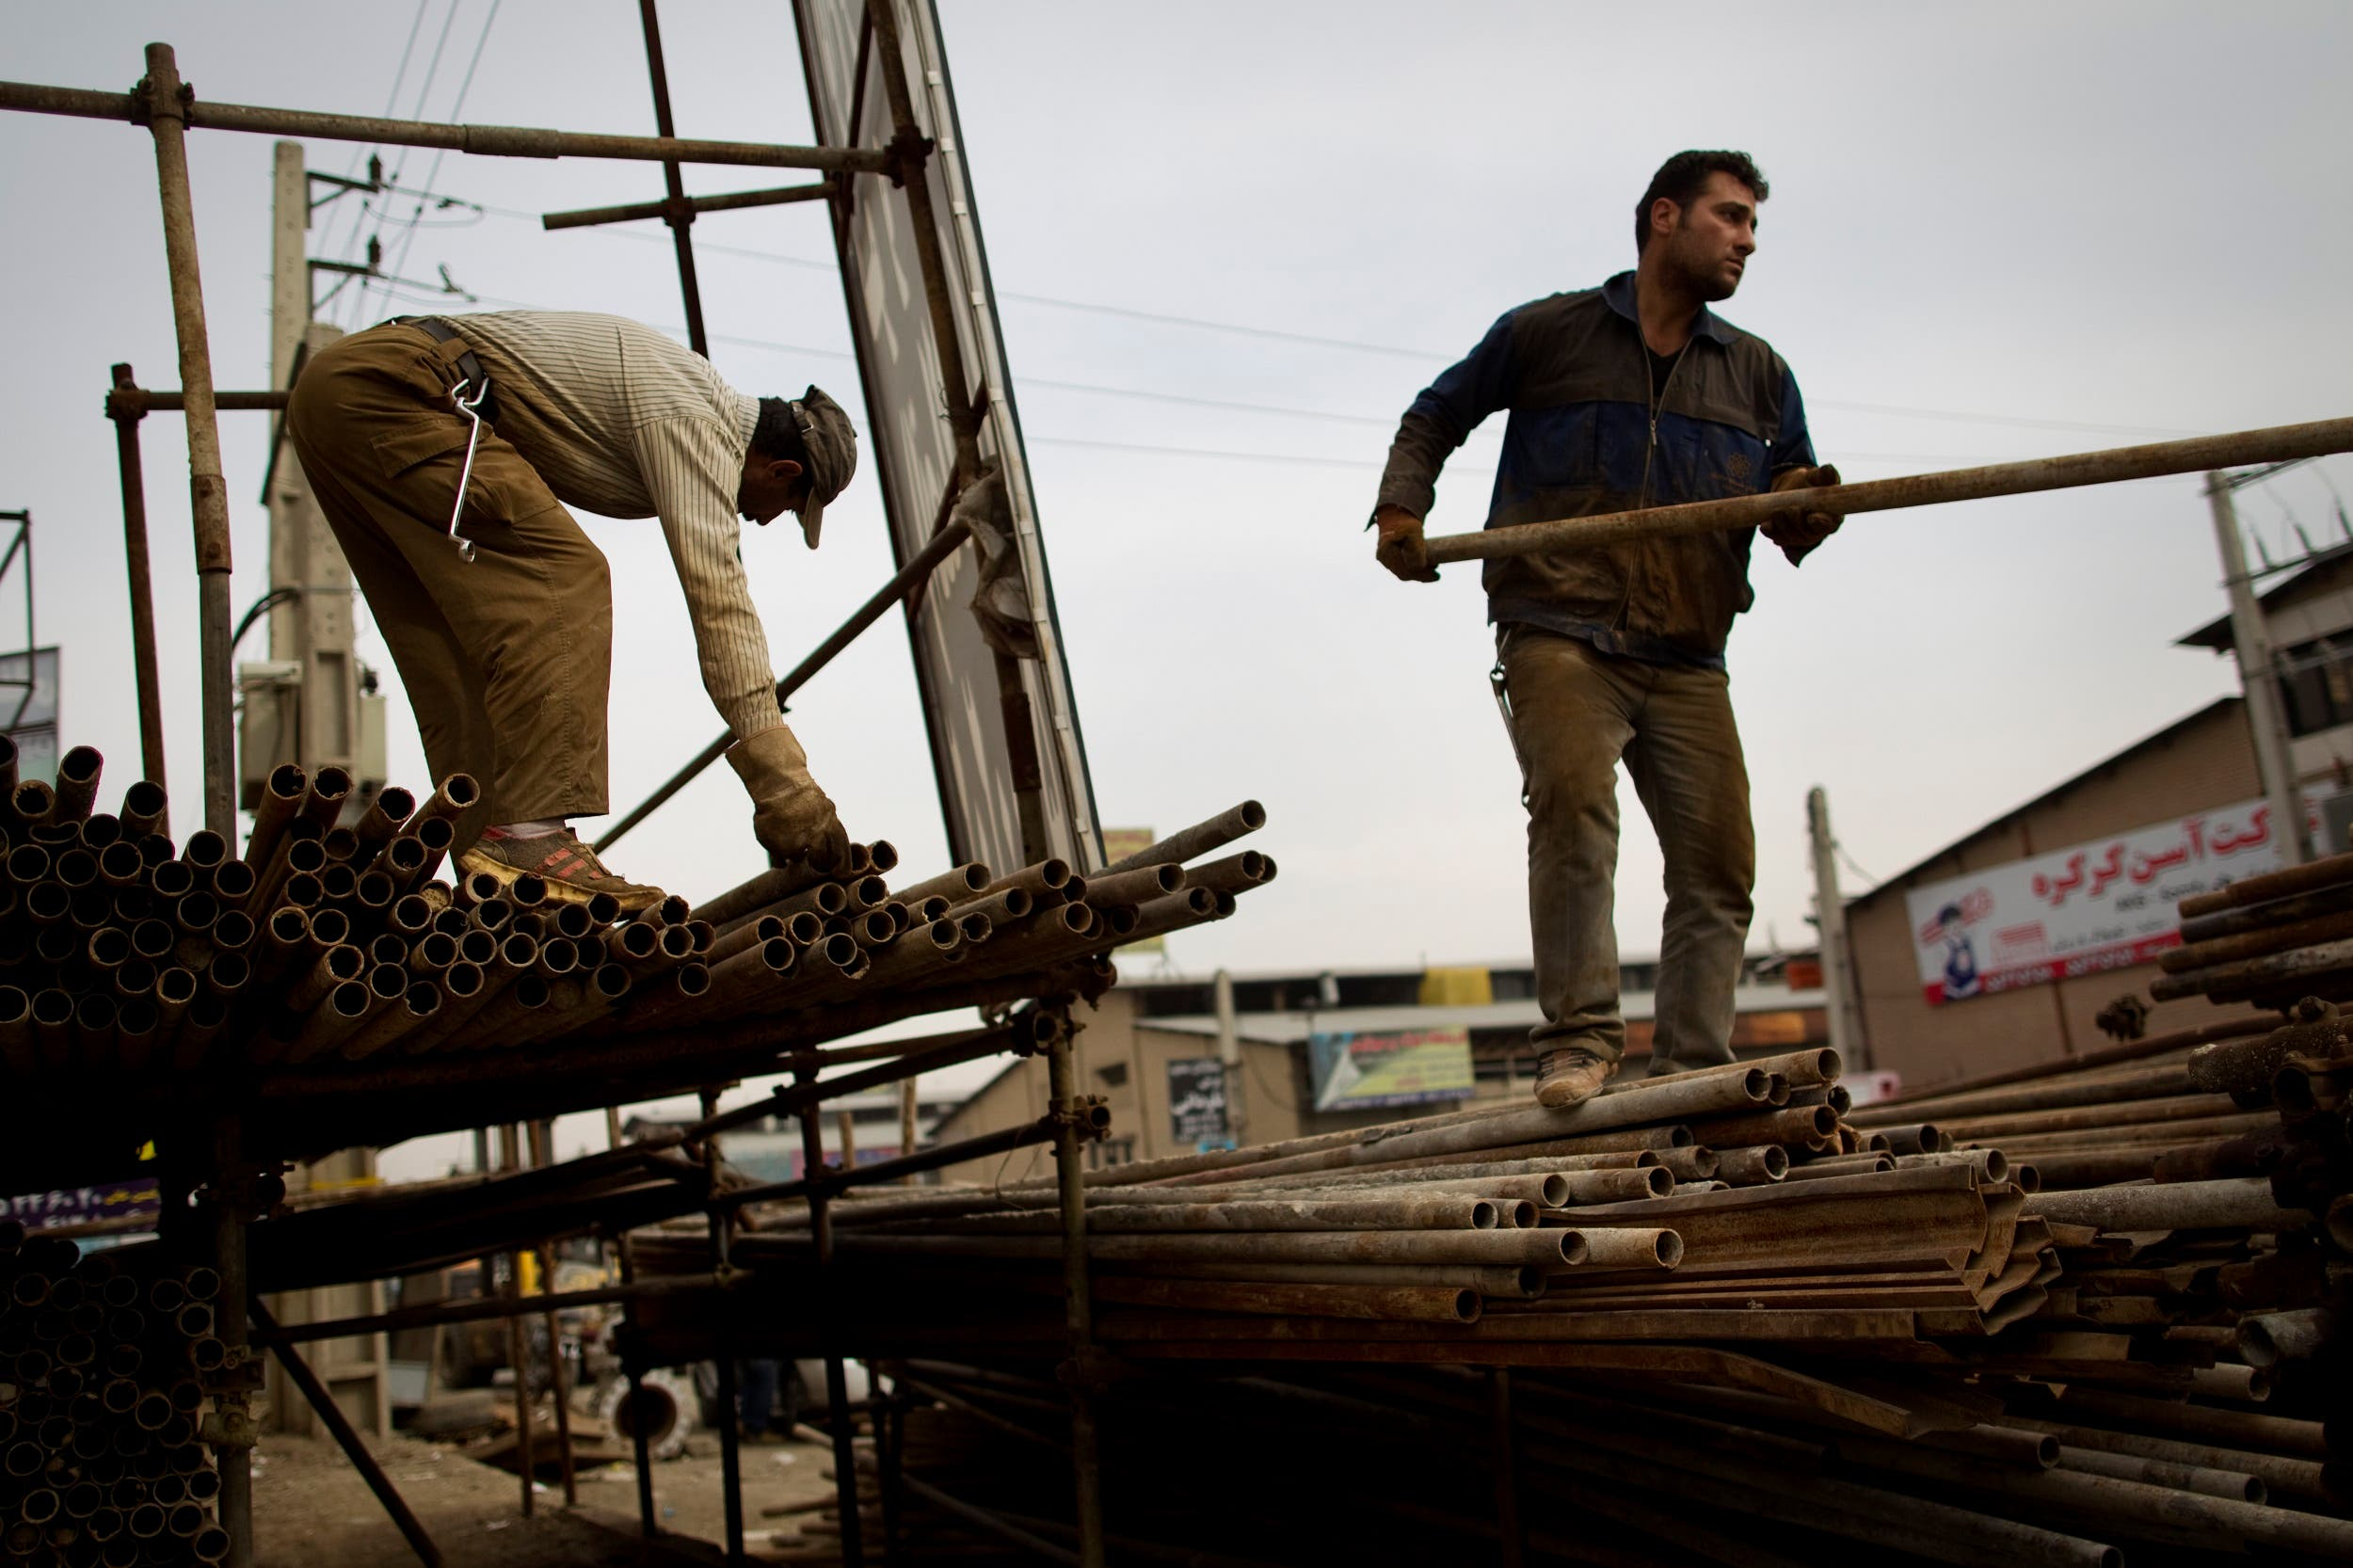 Iranian workers load scaffolding onto a pick-up truck at an iron market in Tehran on February 25, 2012. (File photo: AFP)